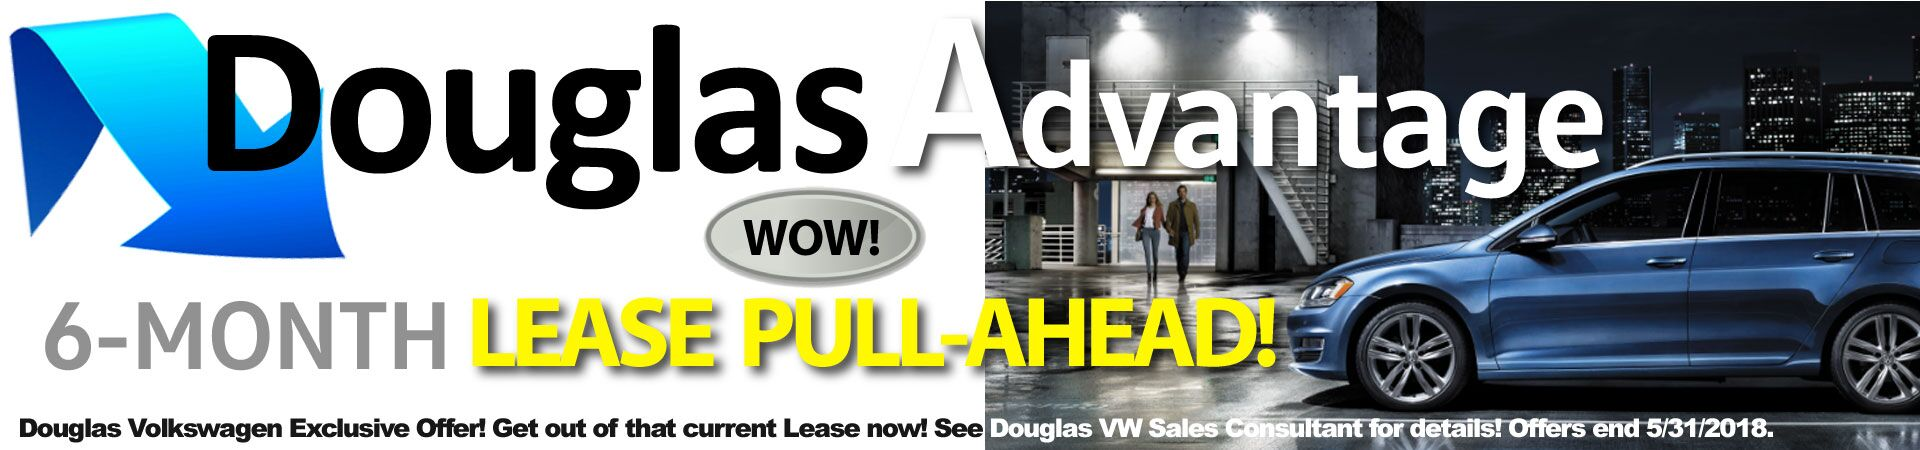 Exclusive 6-Month Lease Pull-Ahead Offer Only at Douglas Volkswagen!